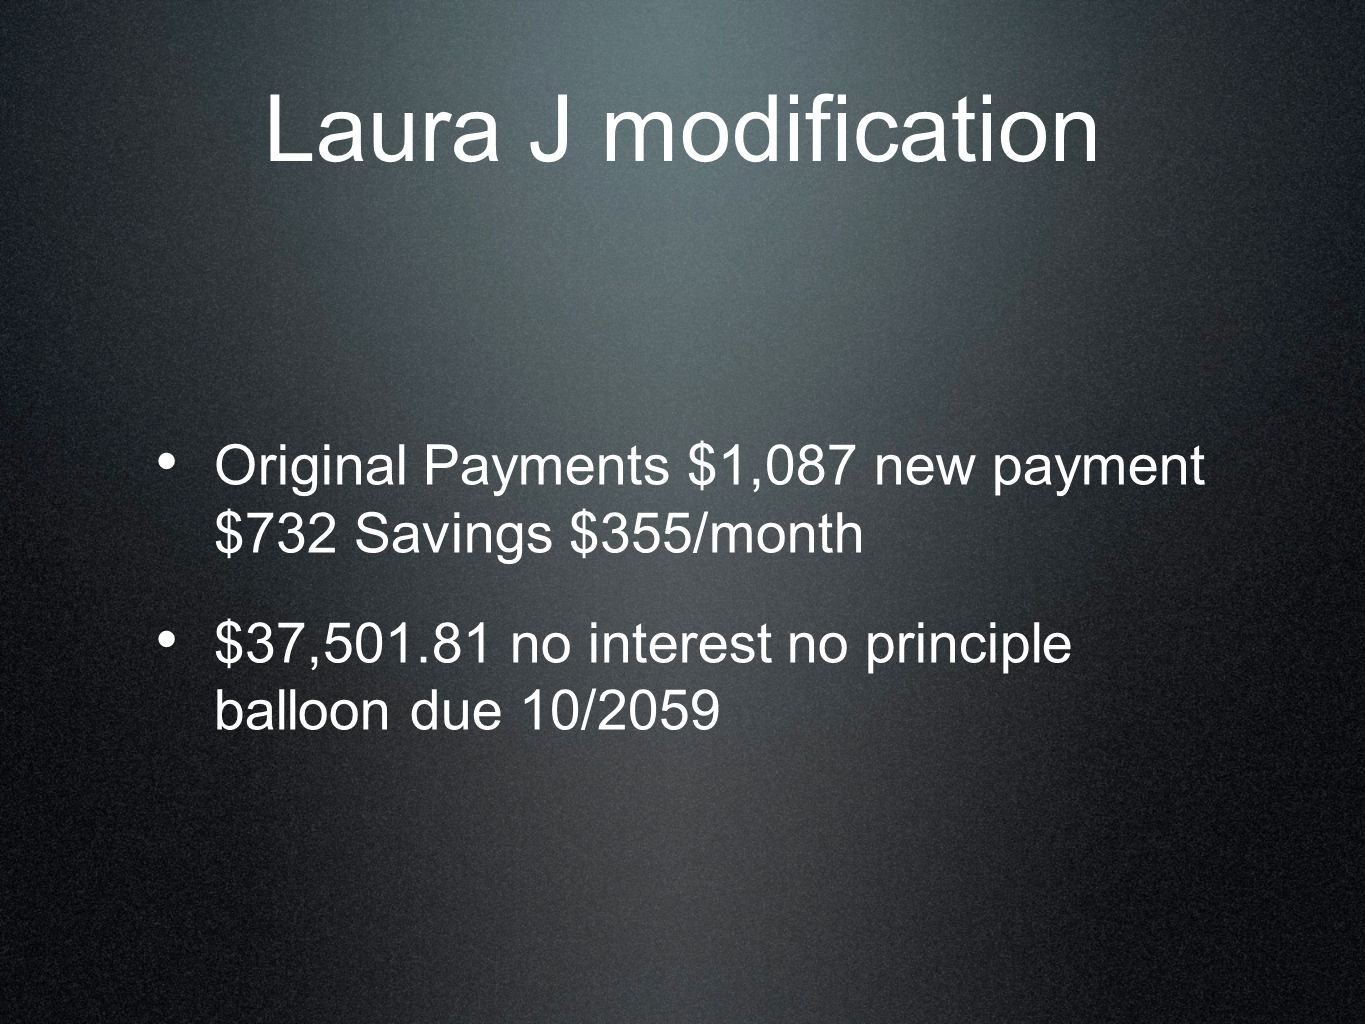 Laura J modification Original Payments $1,087 new payment $732 Savings $355/month $37,501.81 no interest no principle balloon due 10/2059